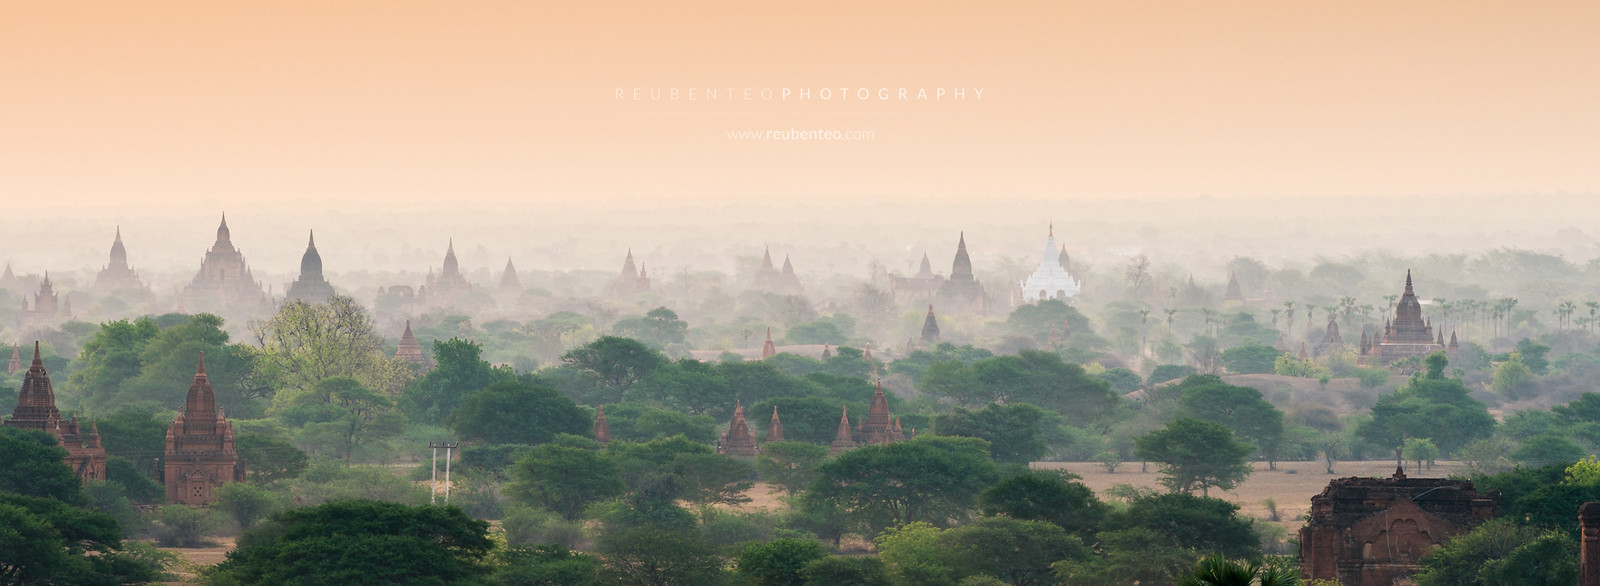 Misty Bagan at dawn